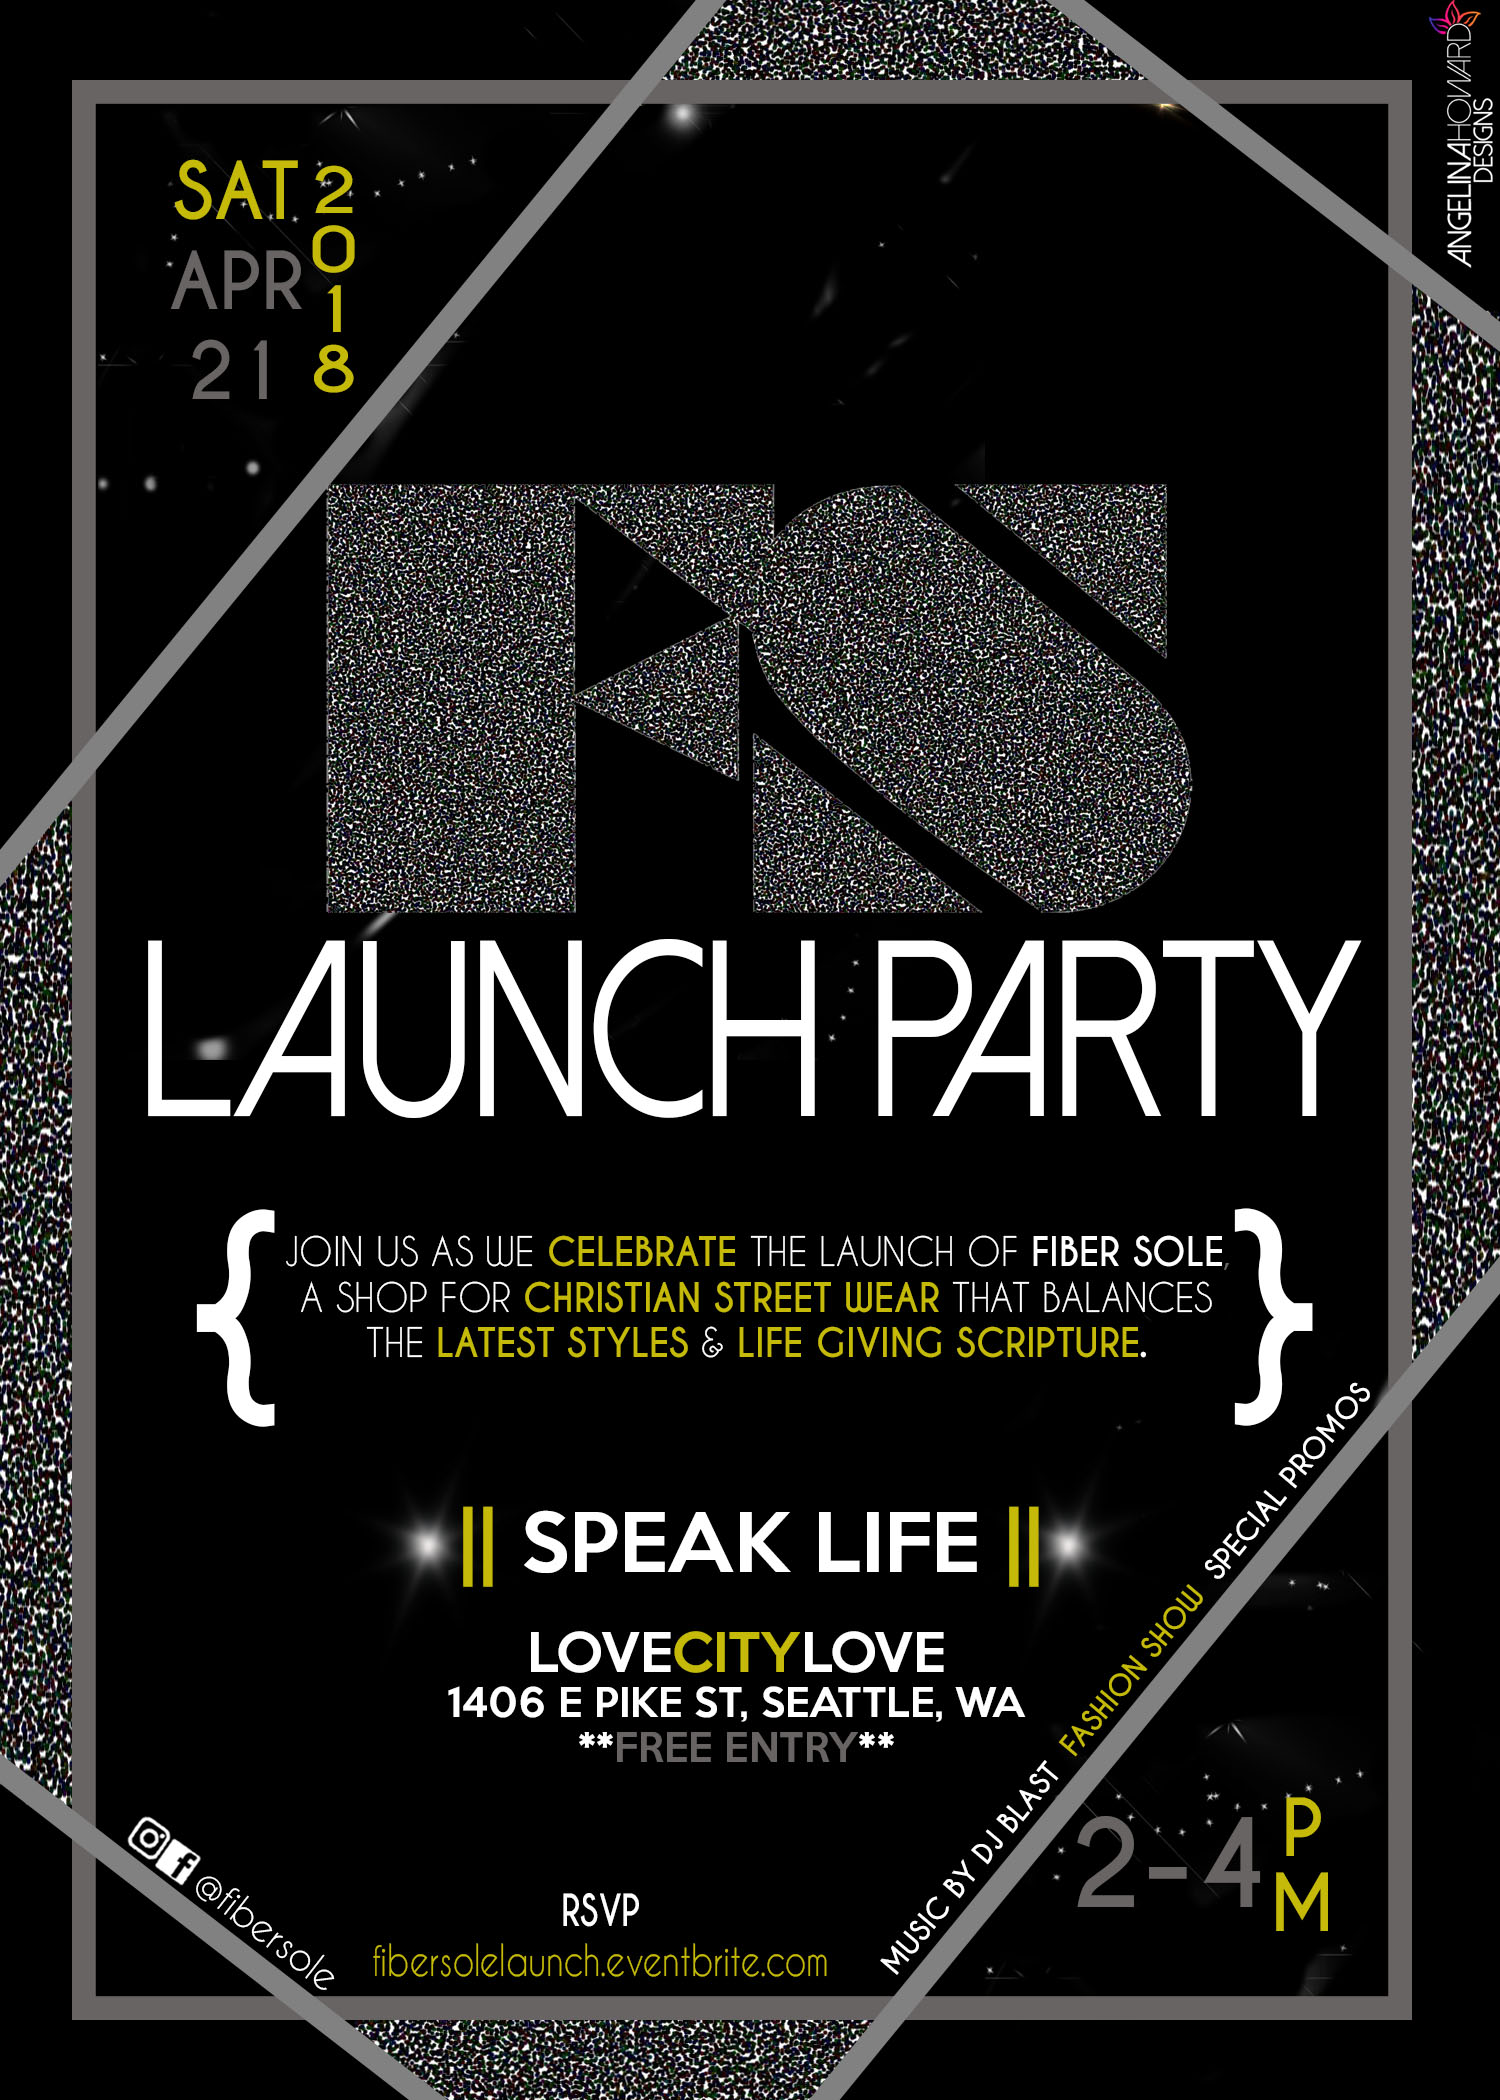 Fiber Sole Launch Party Flyer